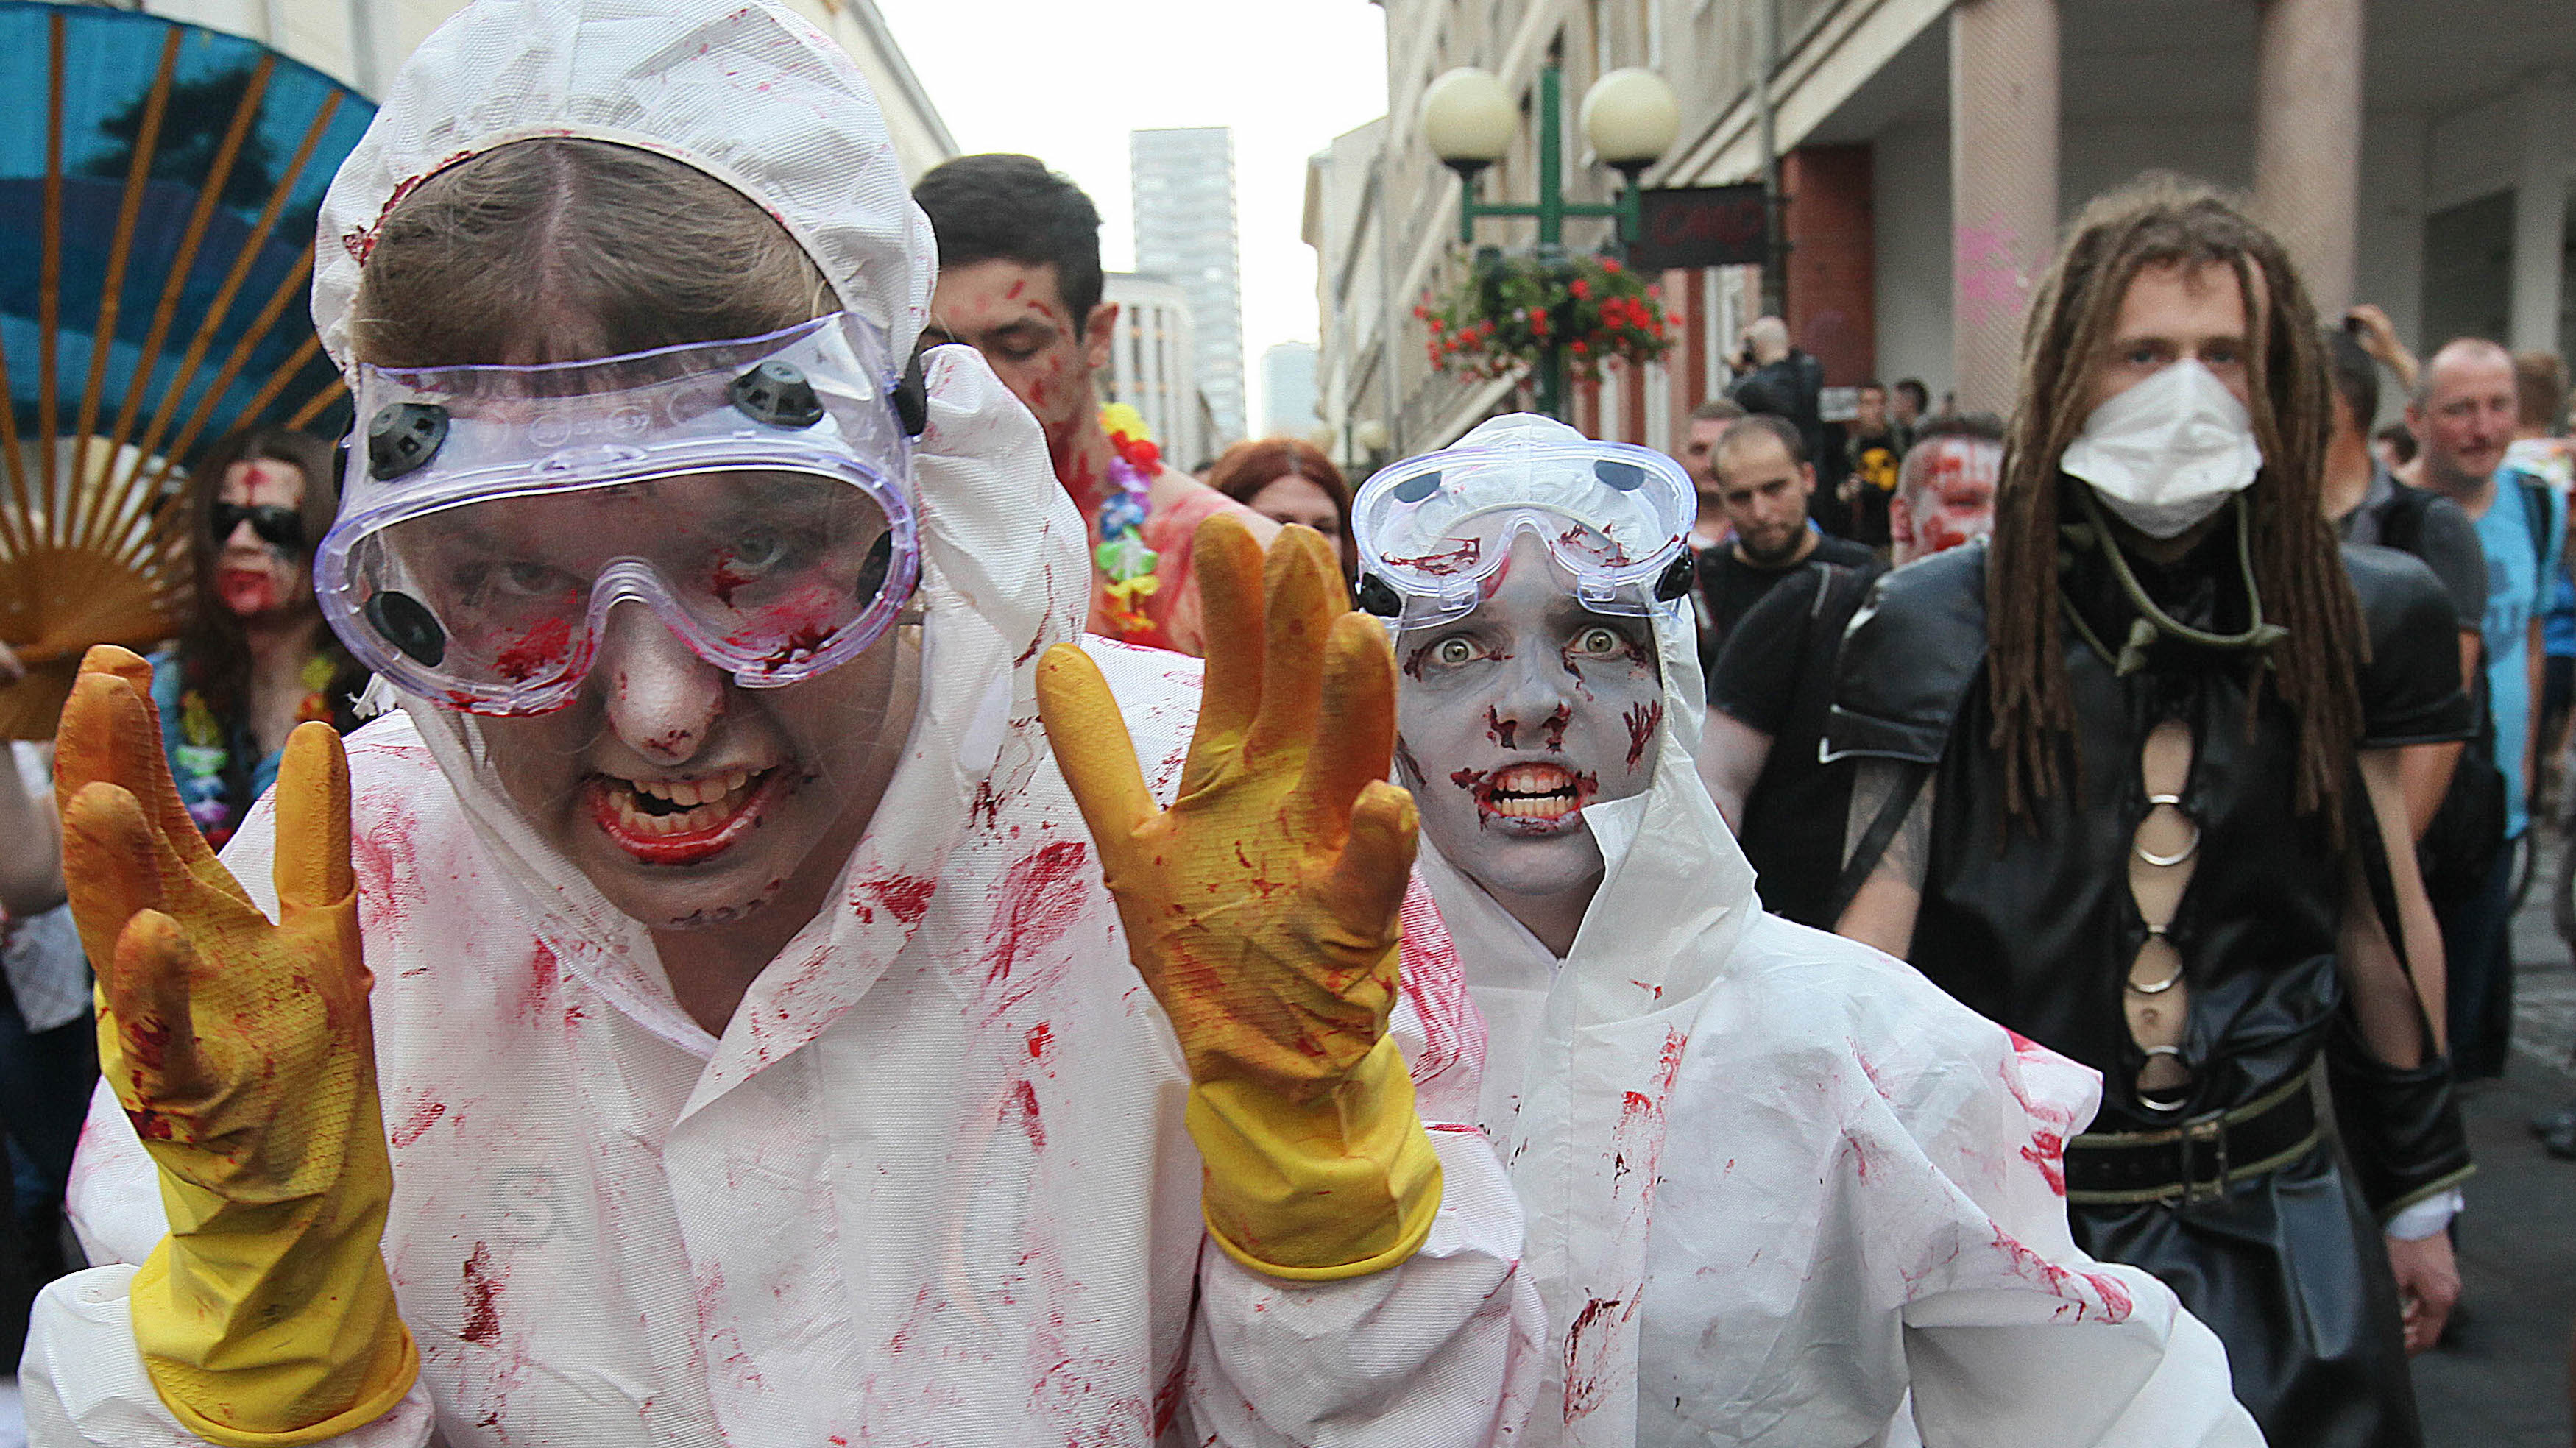 These hazmat suits really didn't help much.